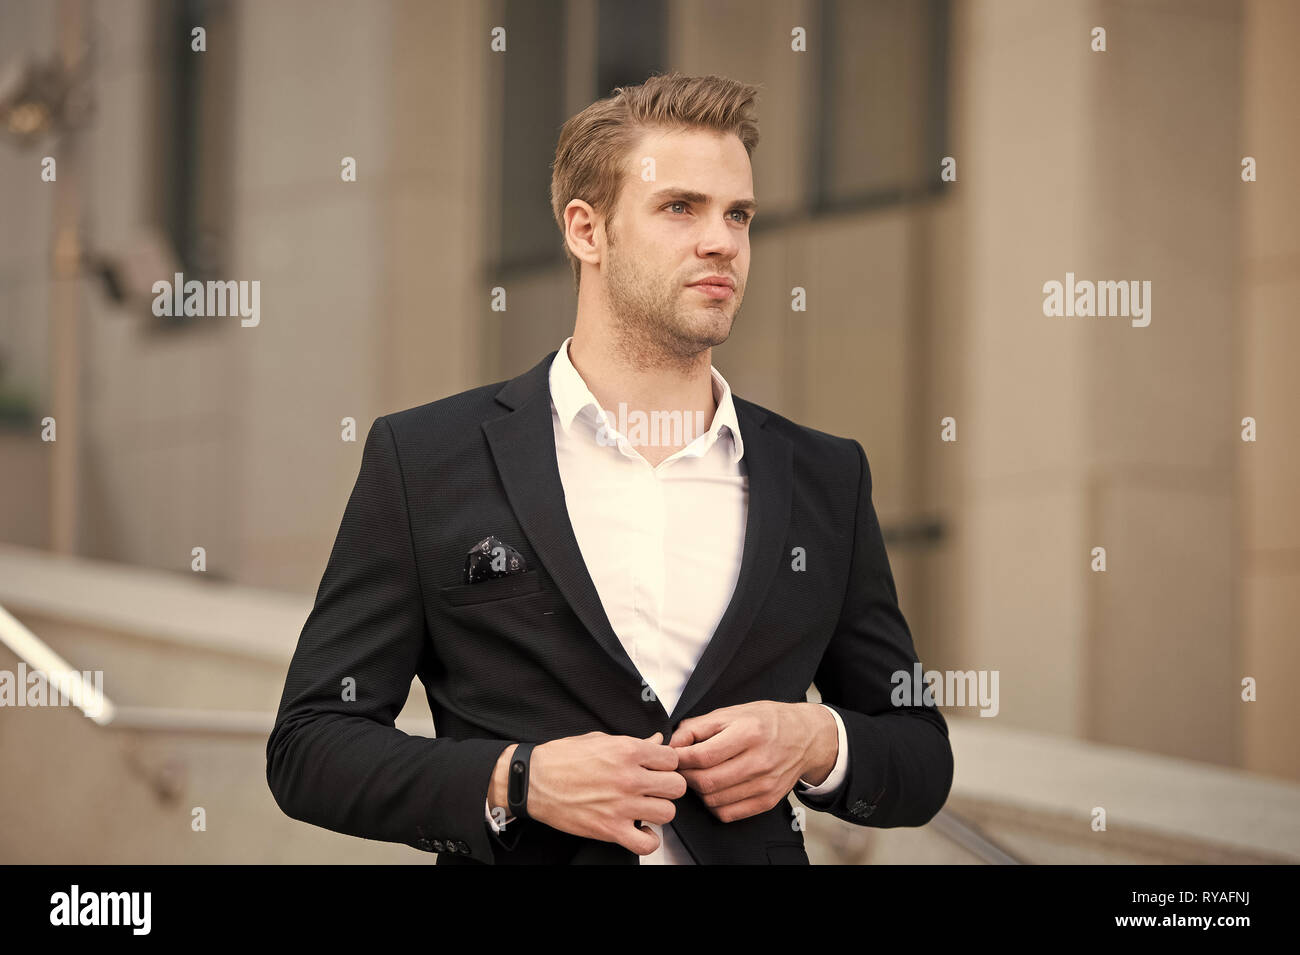 Uniform business environments decorum professionalism woven culture organization. Man formal suit businessman well groomed urban background. Professio - Stock Image